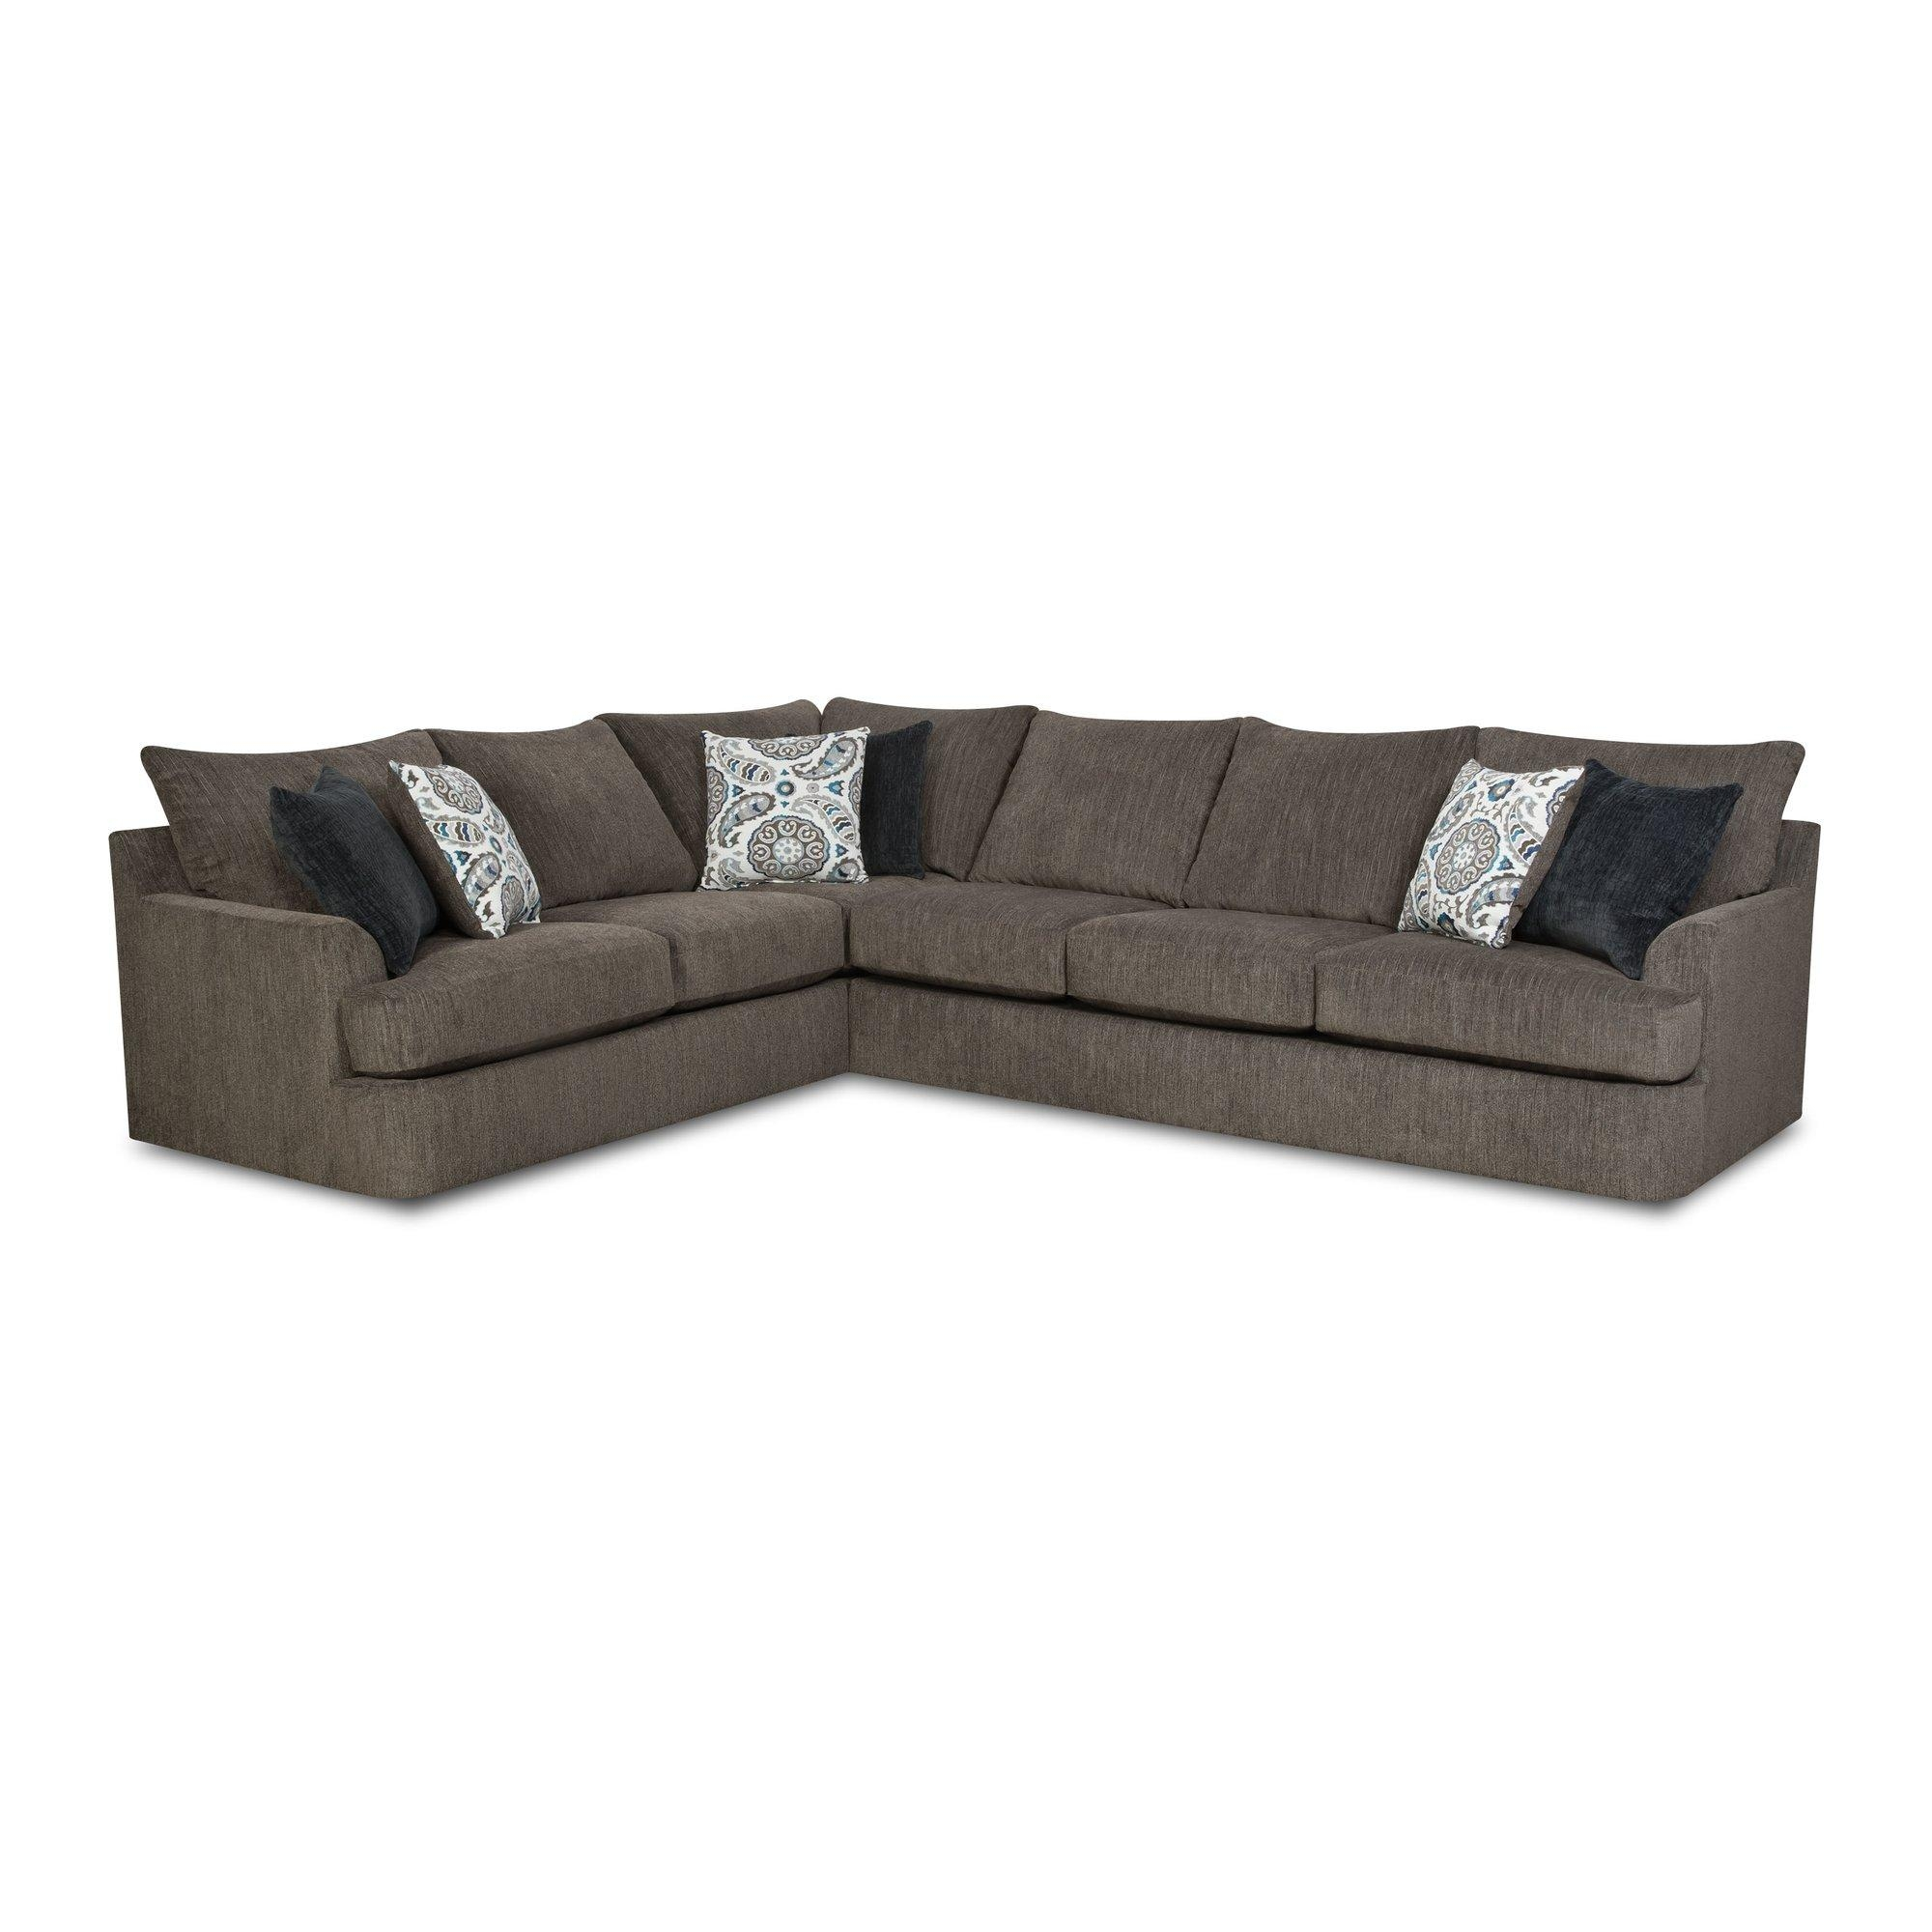 Red Barrel Studio Simmons Sectional & Reviews | Wayfair Supply Throughout Simmons Sectional Sofas (Image 3 of 20)